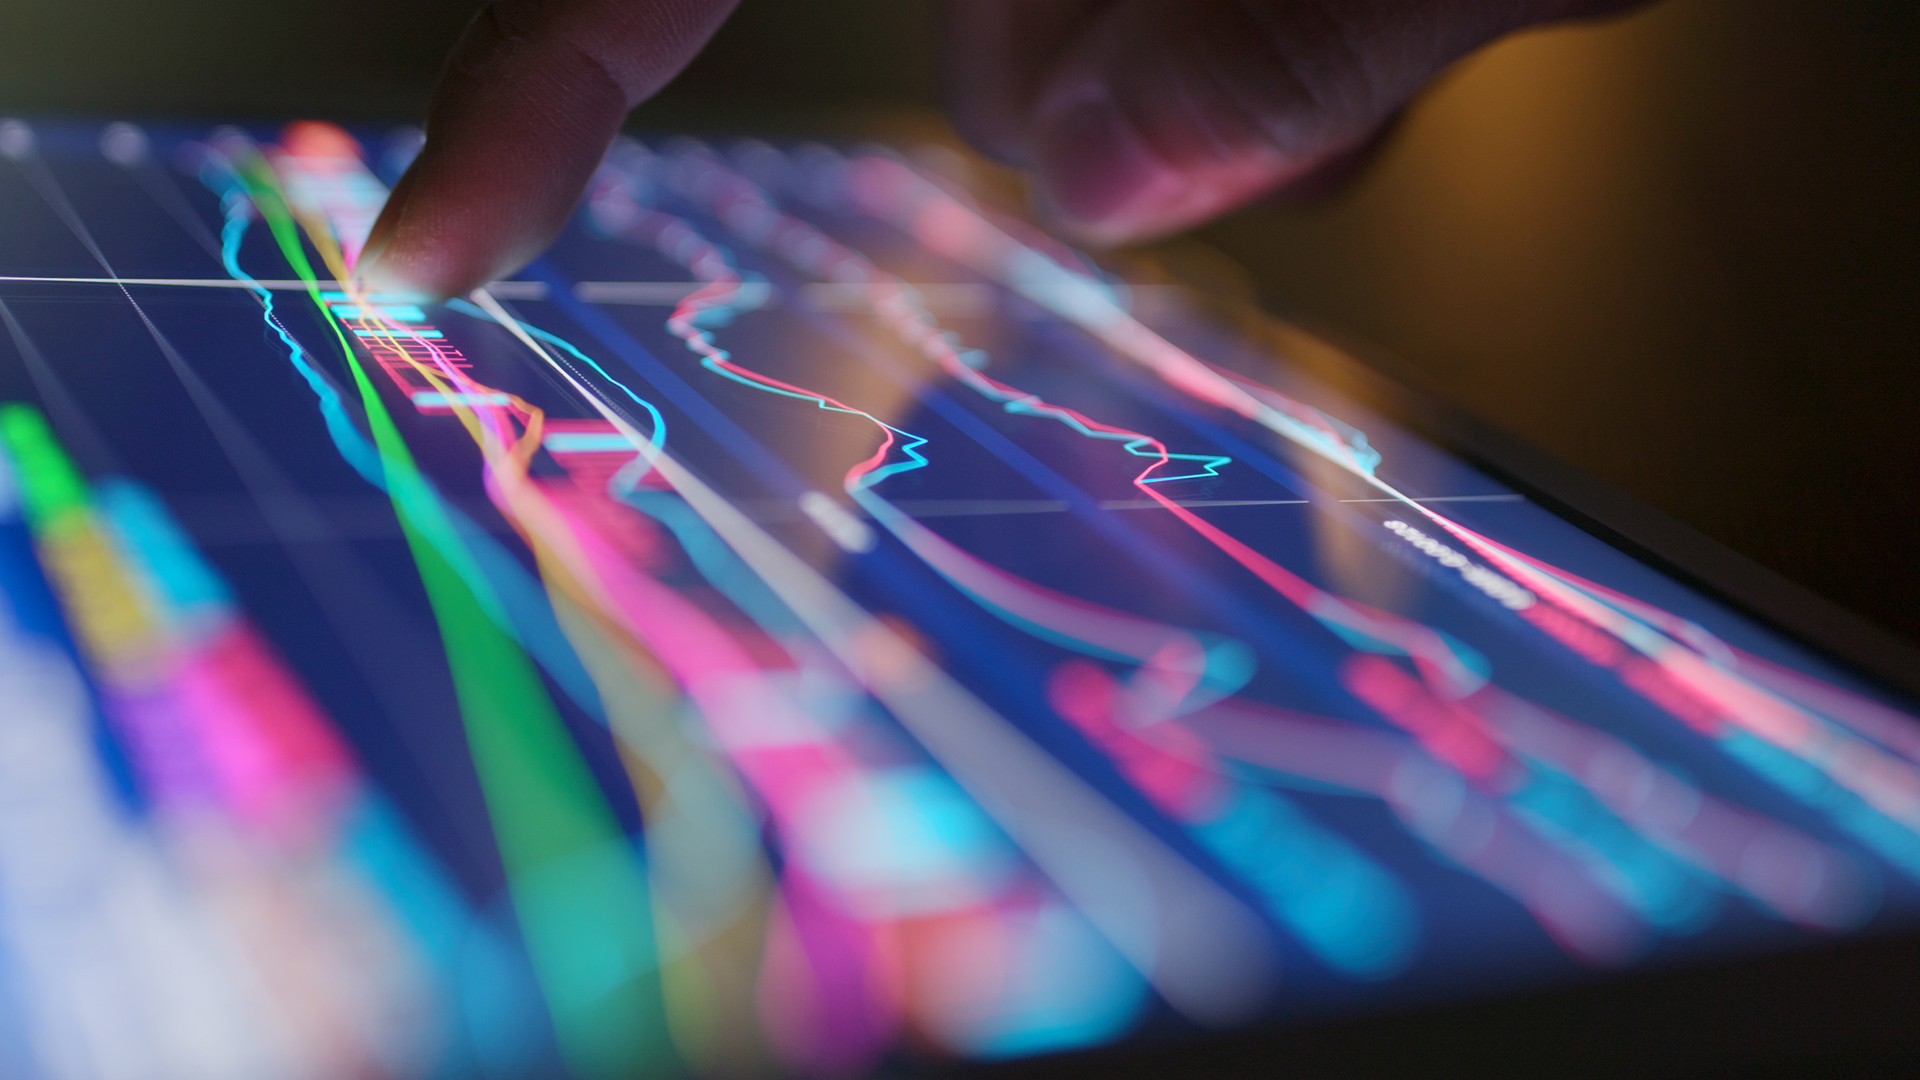 Decorative: multicoloured data graphs on a tablet